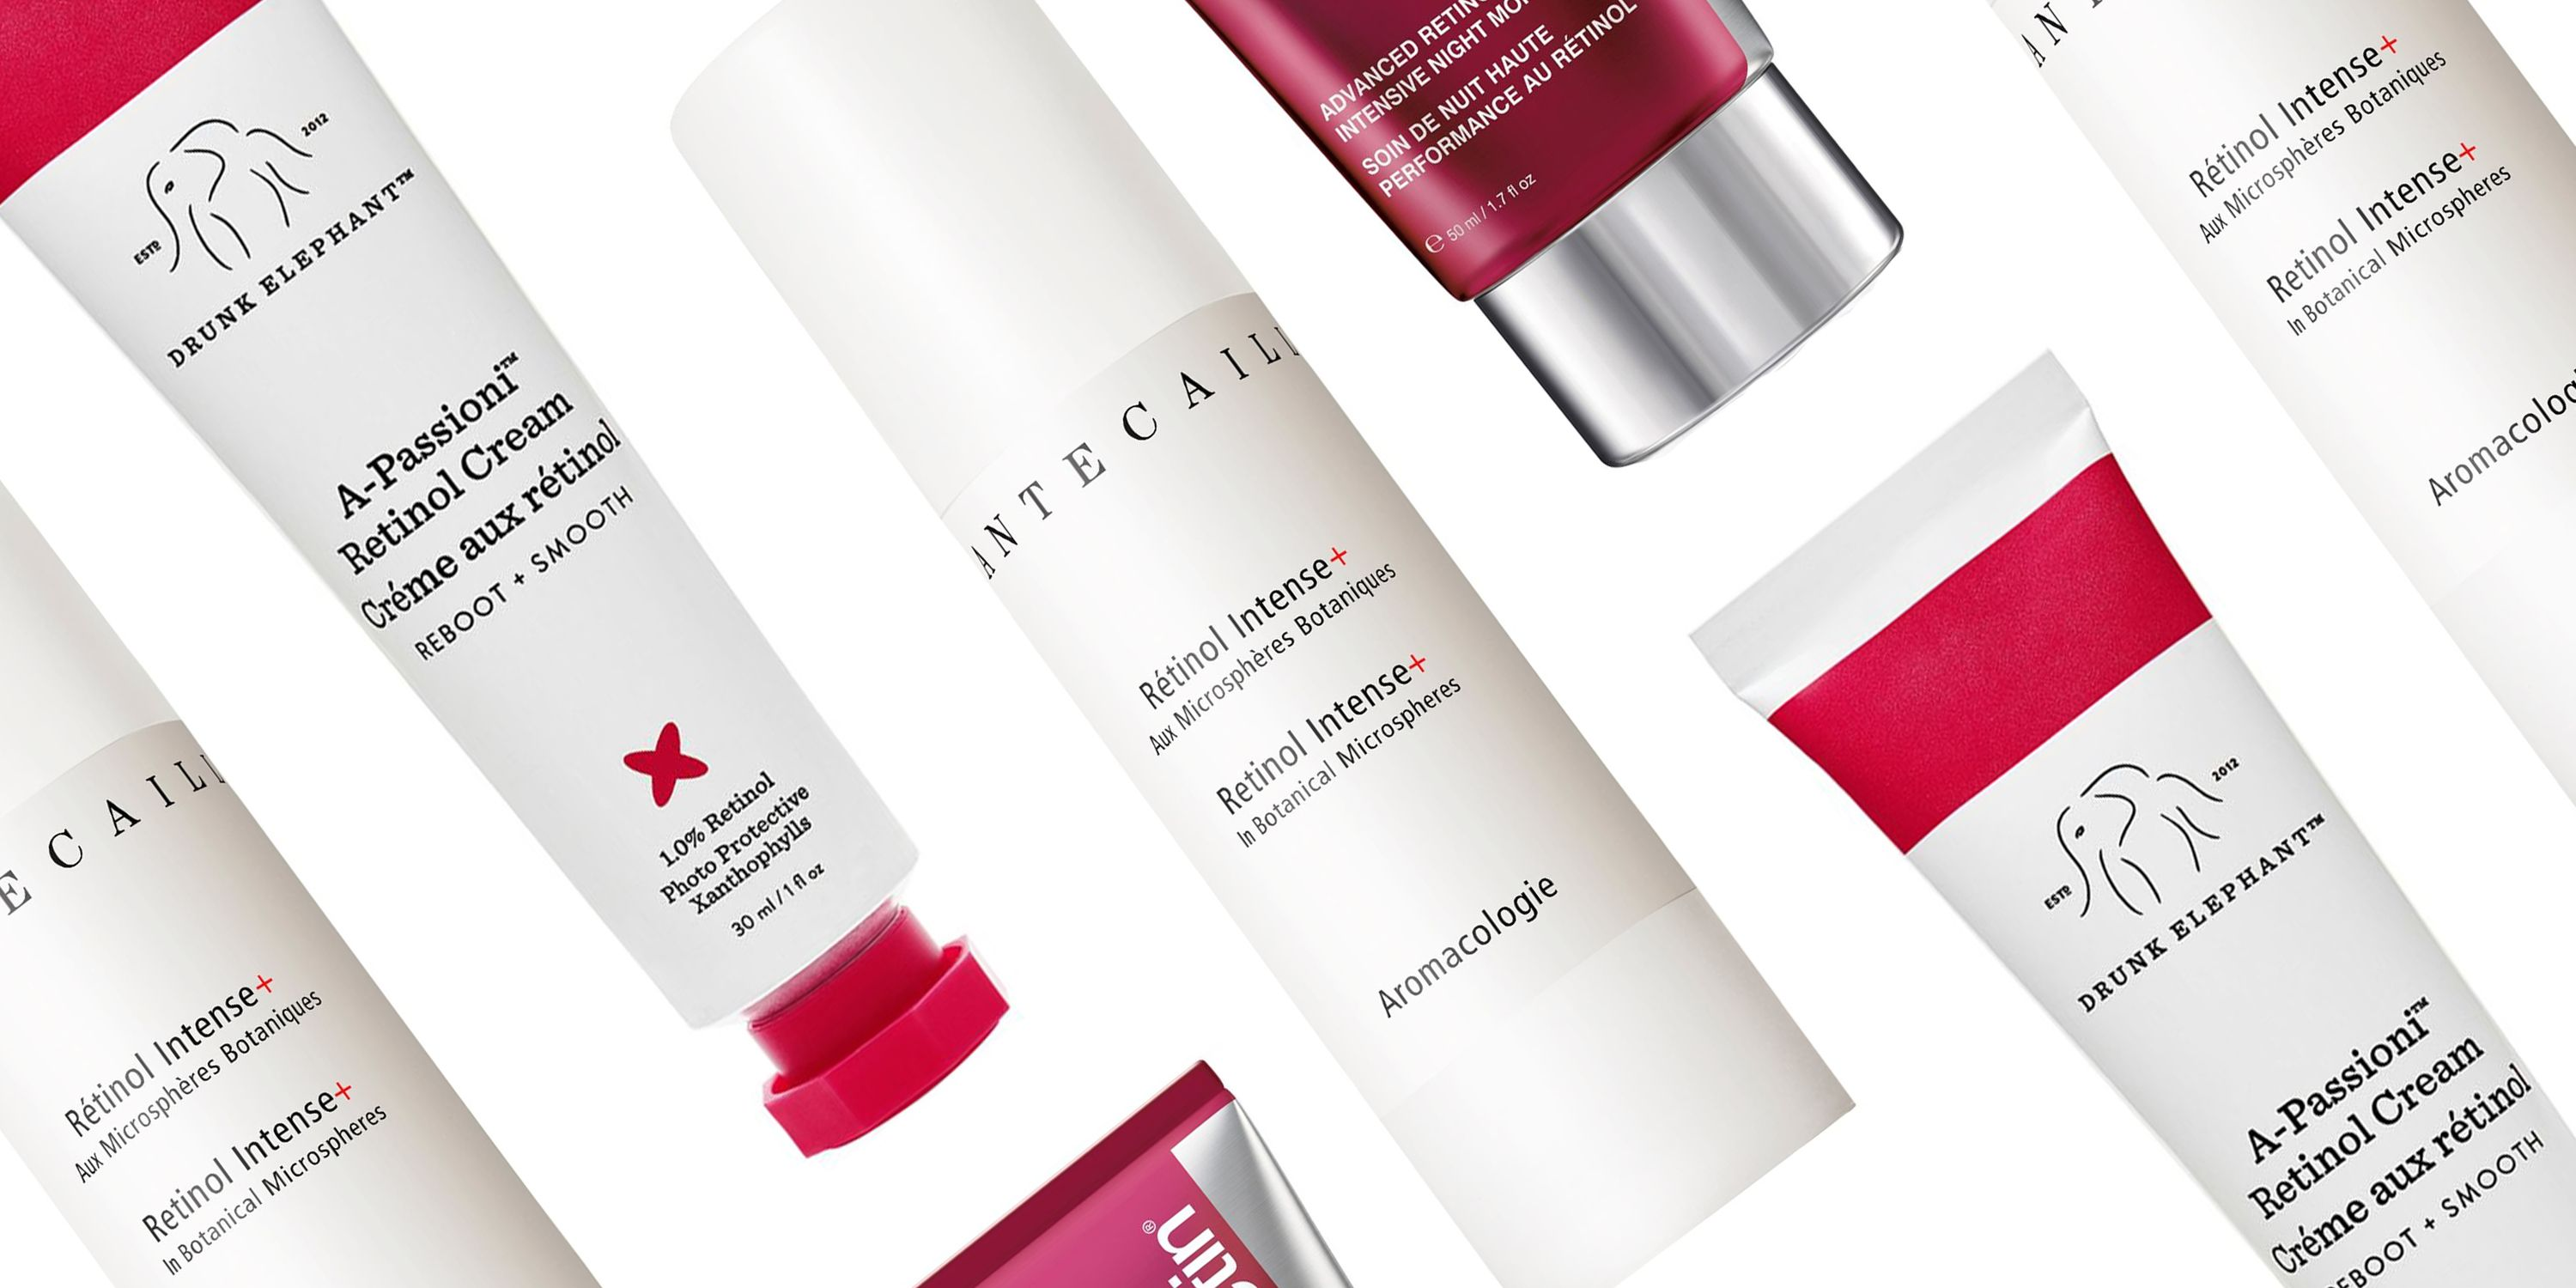 The 11 Best Retinol Creams You Can Get Right Now